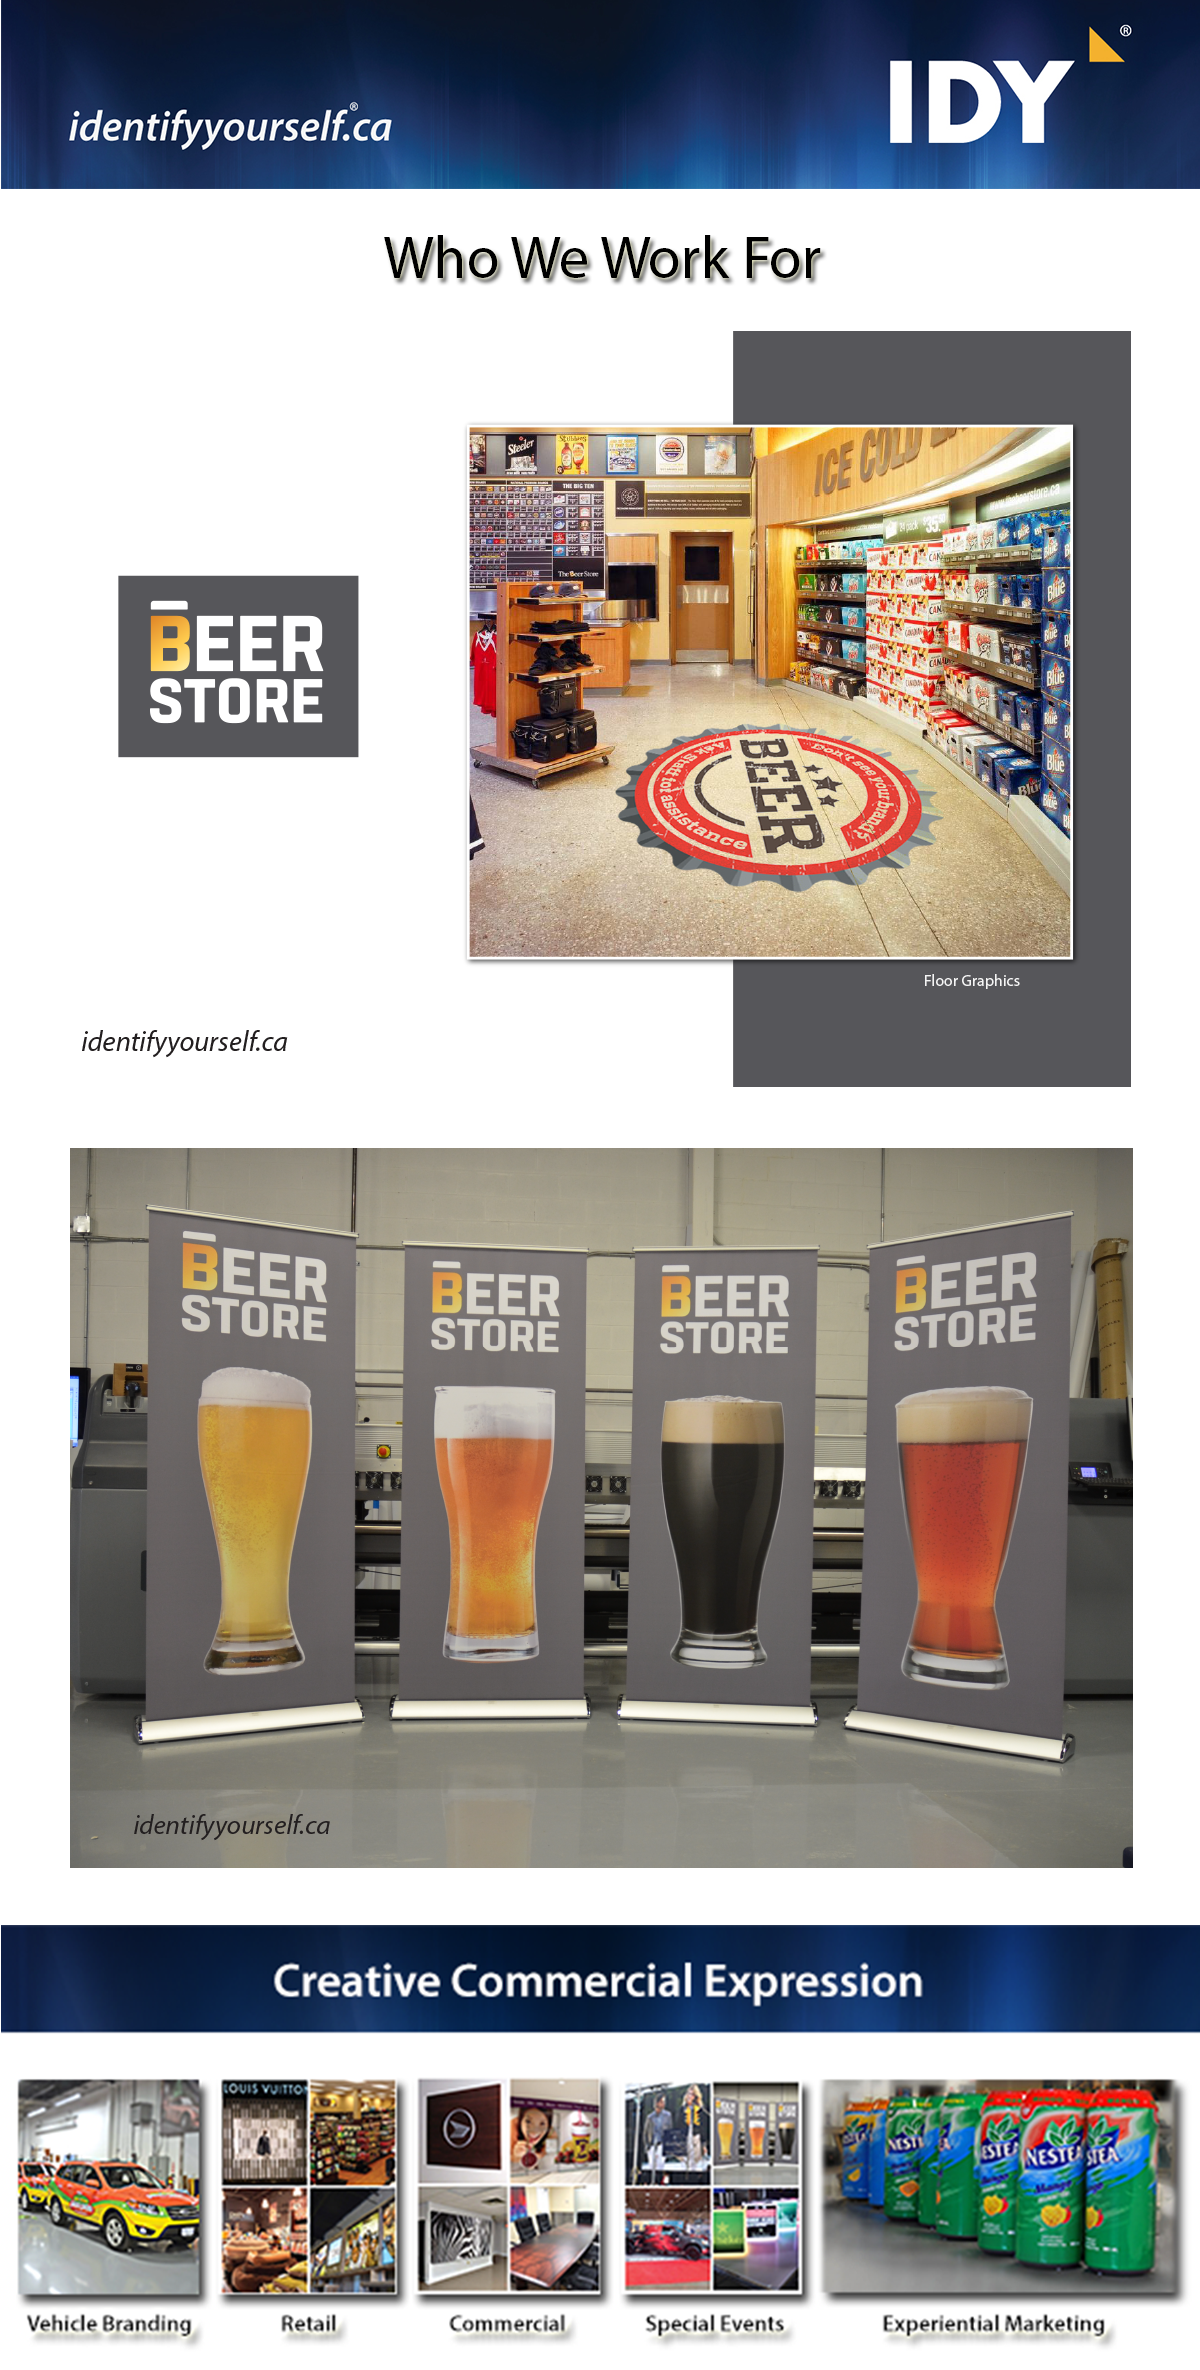 Who-We-Work-For_Beer-Store_Identify-Yourself.ca